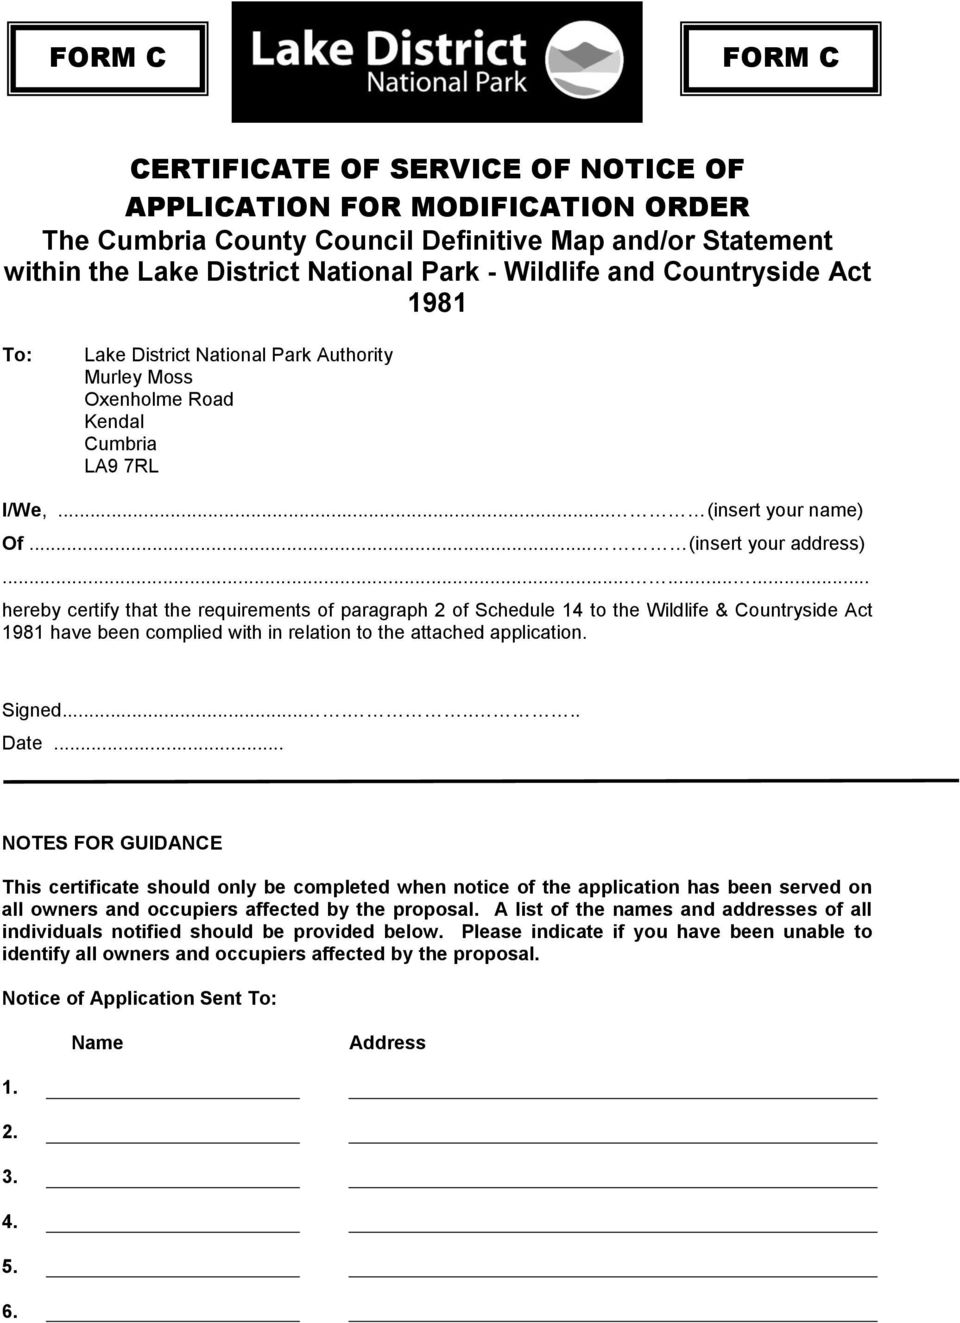 ........ hereby certify that the requirements of paragraph 2 of Schedule 14 to the Wildlife & Countryside Act 1981 have been complied with in relation to the attached application. Signed........ Date.